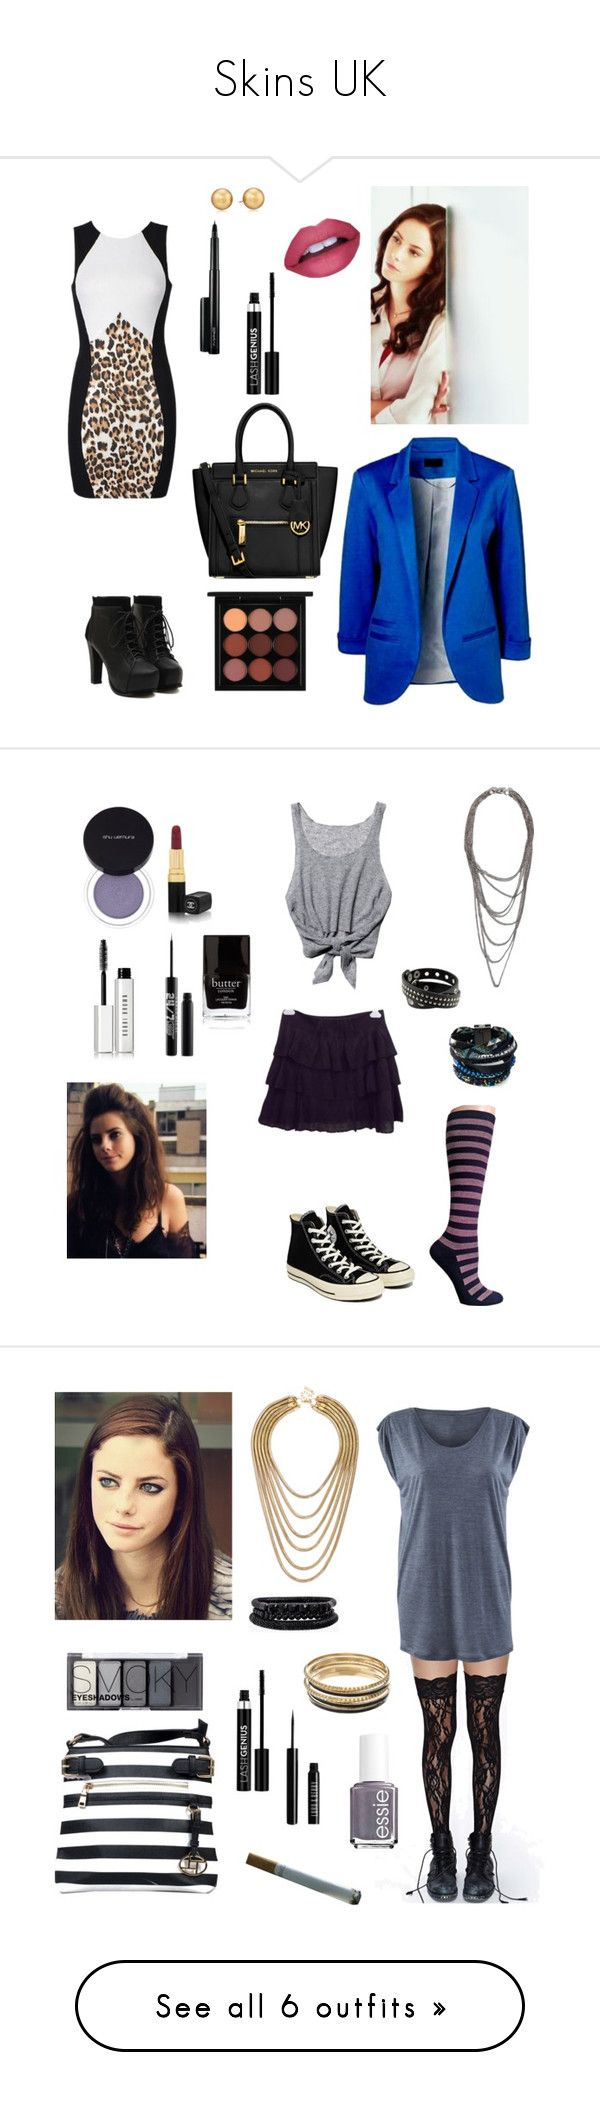 """""""Skins UK"""" by youmydecoy ❤ liked on Polyvore featuring Ally Fashion, Effy Jewelry, Carolee, MAC Cosmetics, Anastasia, MICHAEL Michael Kors, Free People, Chanel, shu uemura and Legale"""